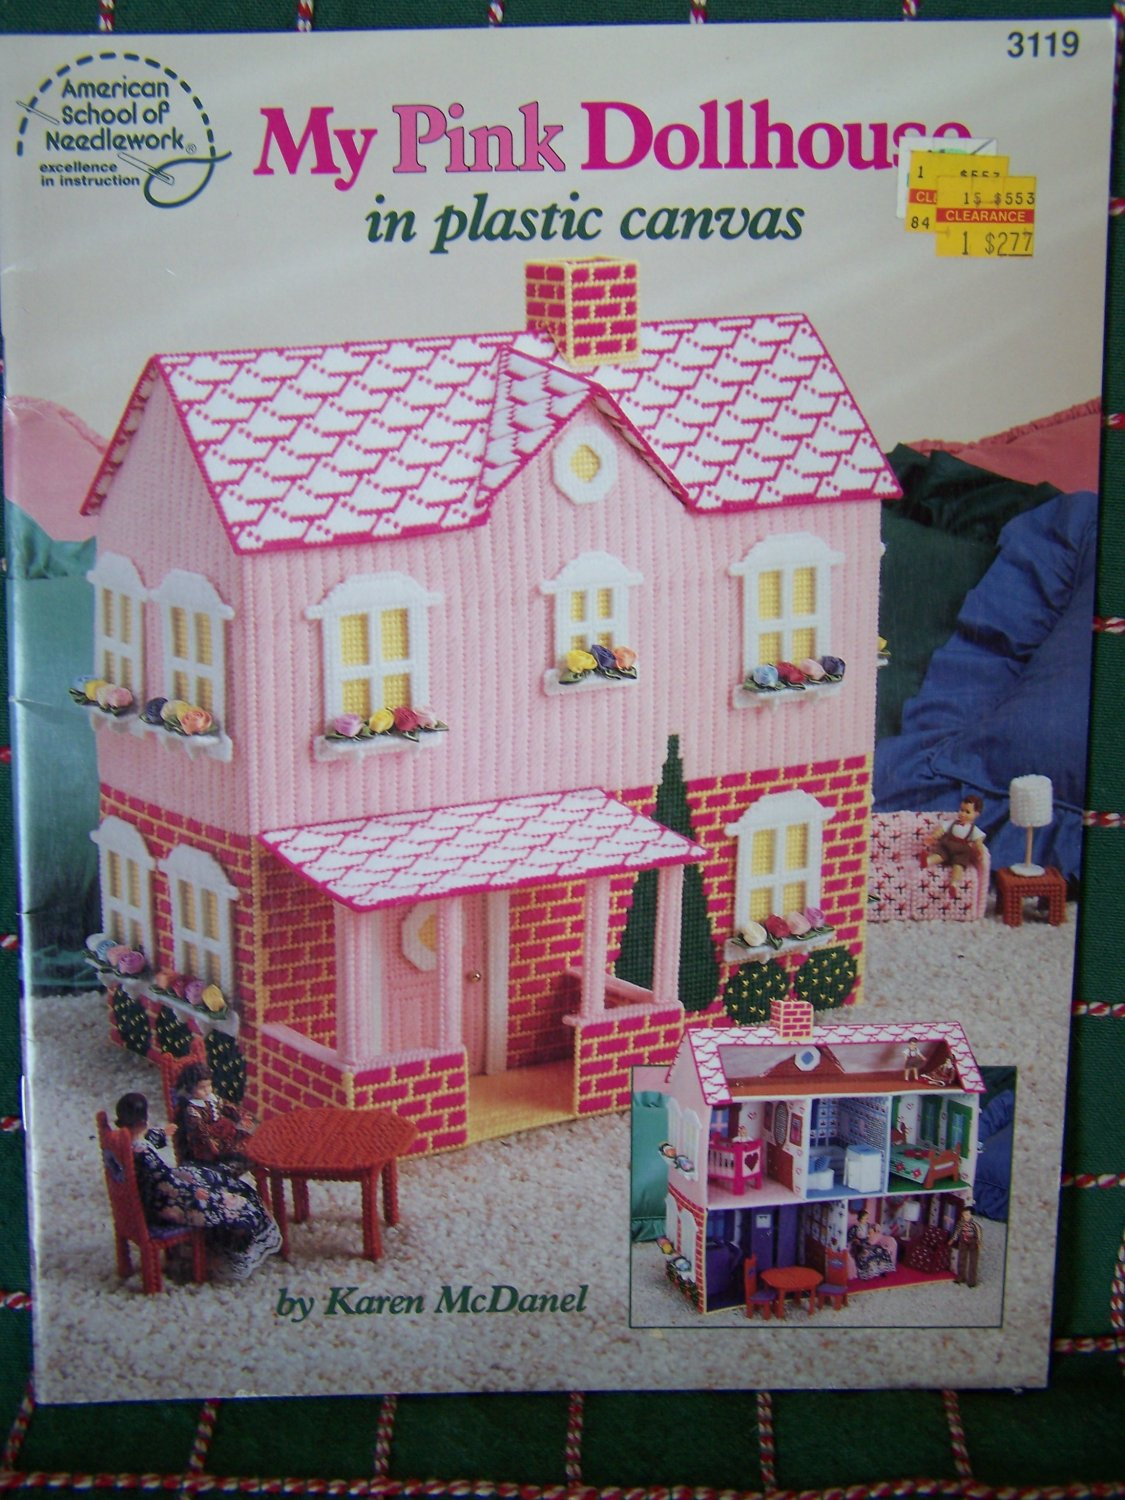 My Pink Dollhouse Plastic Canvas Patterns Doll House Furniture Bedroom Nursery Living